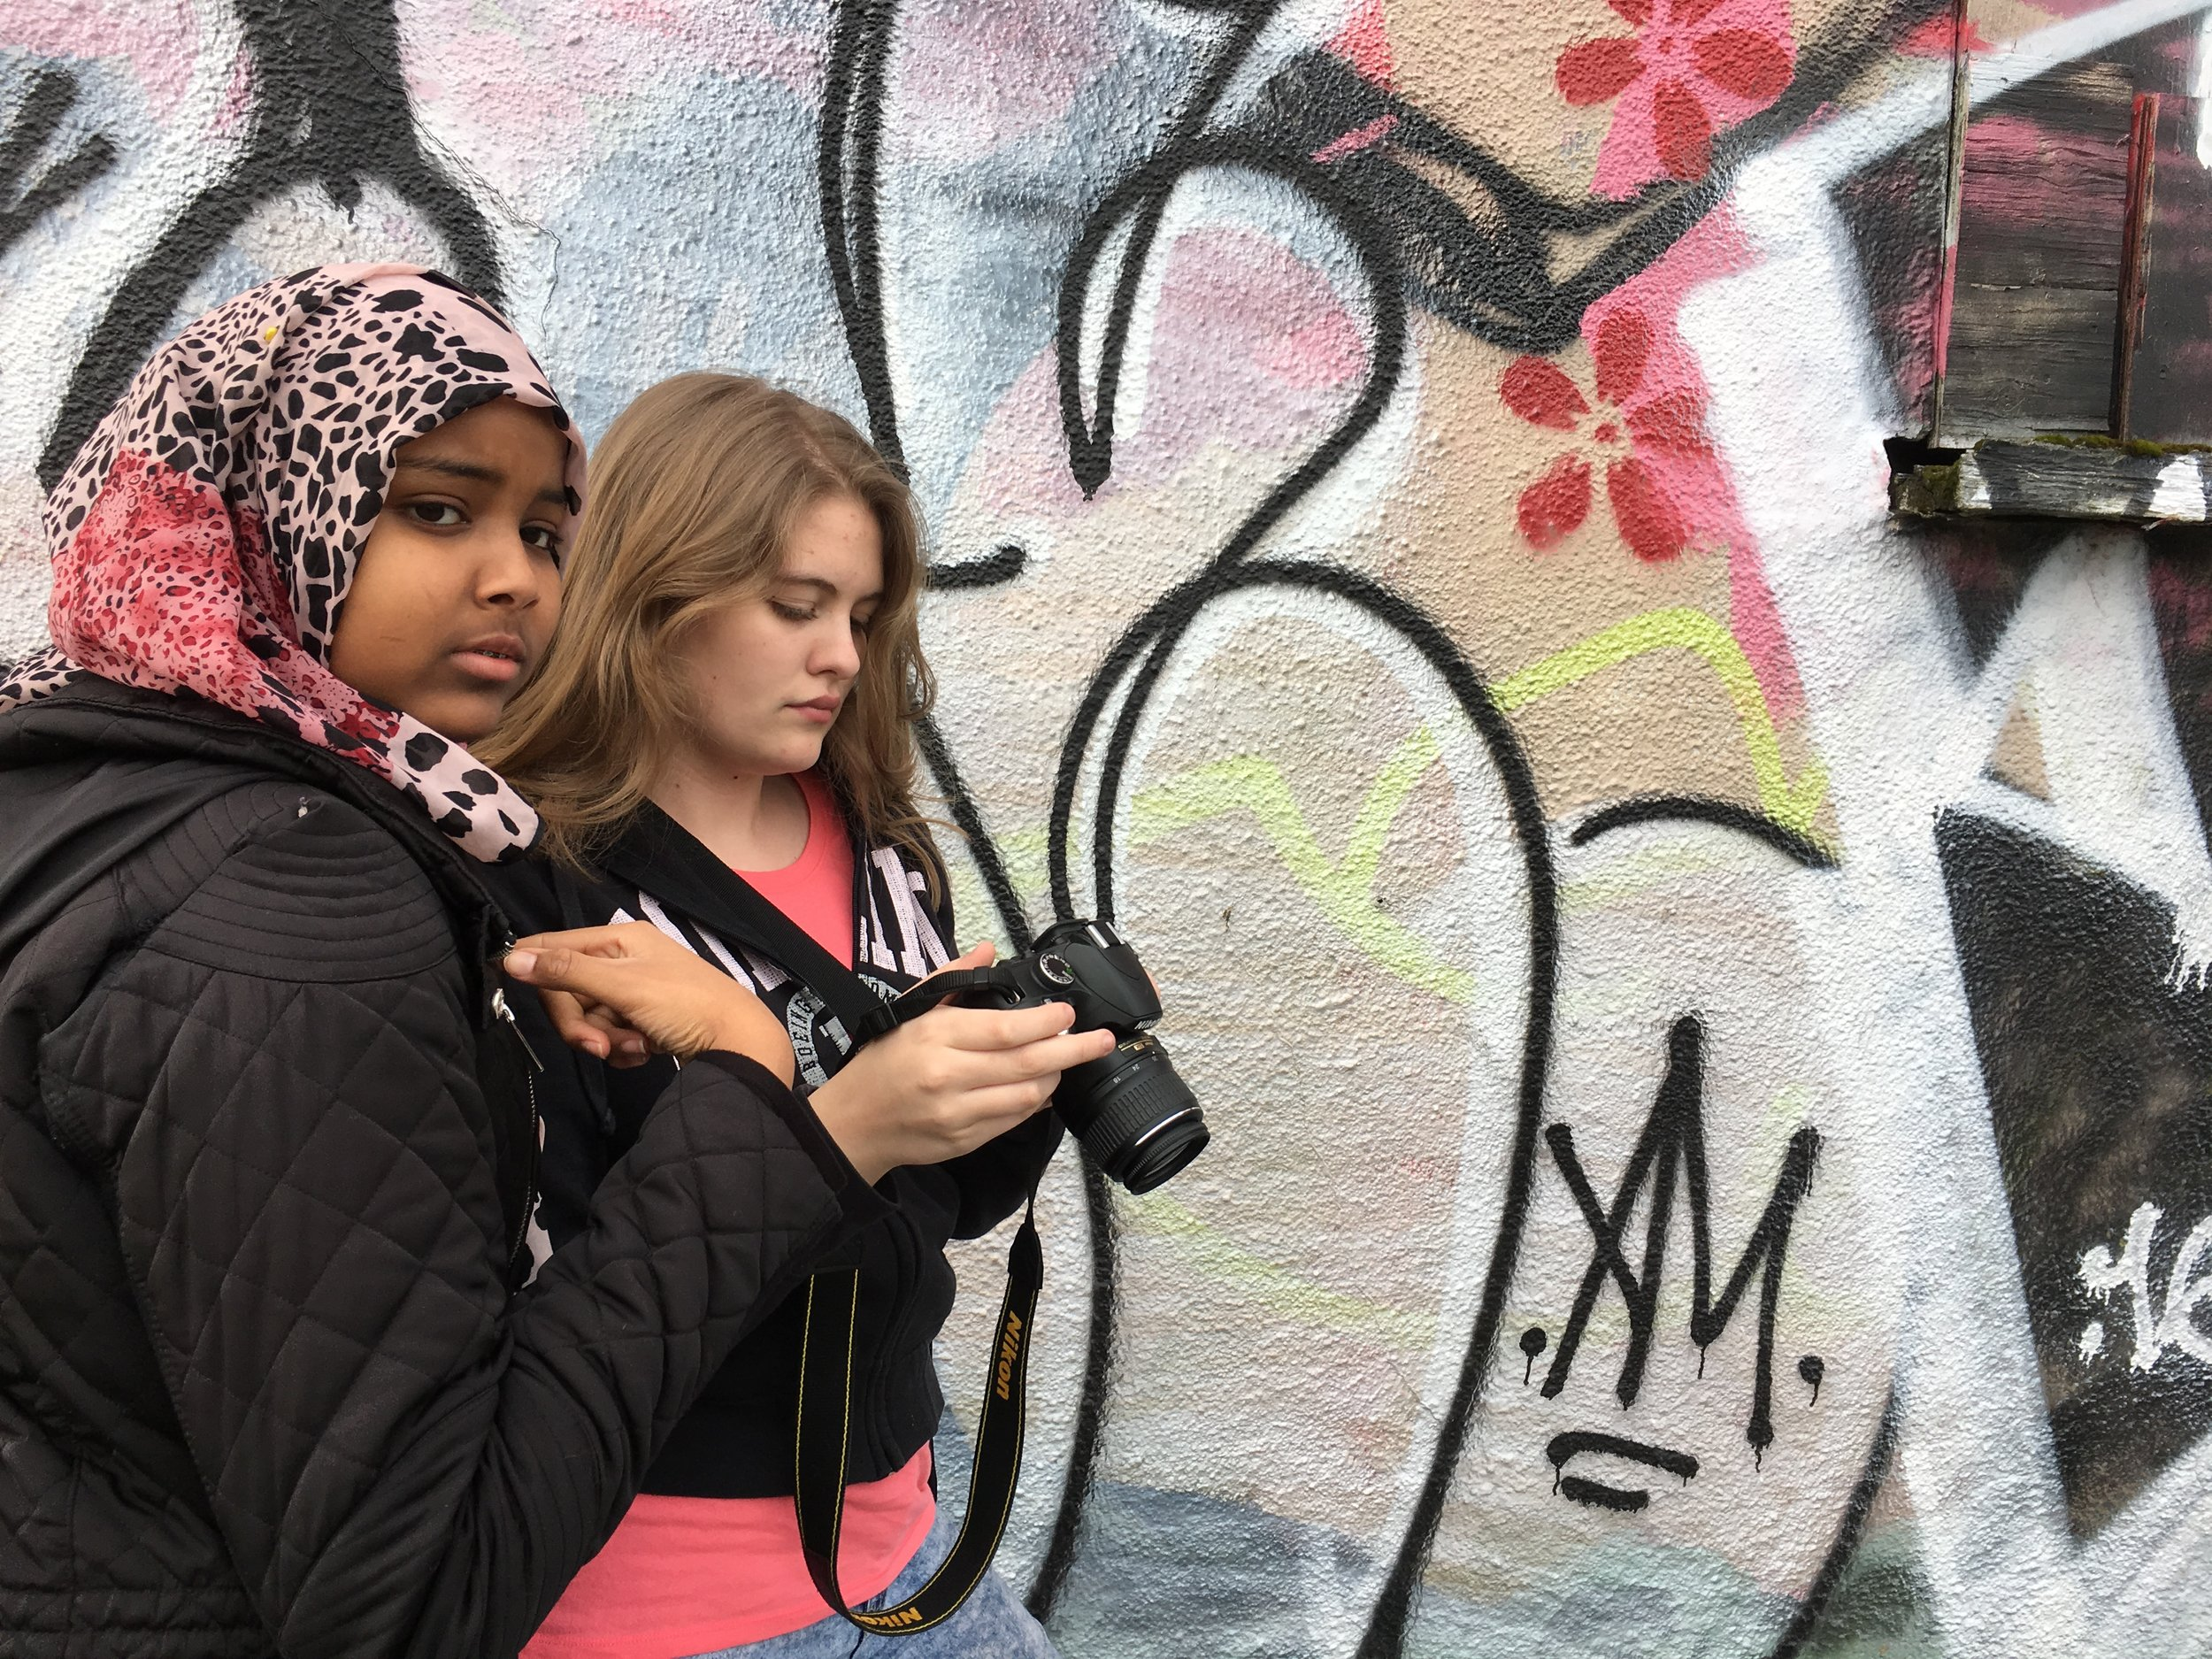 Curriculum Design - Cherry Street Films helps schools and community organizations teach digital storytelling and media literacy through several different programs ranging from Podcasting to Filmmaking. We design custom curriculum based on your organization's goals, program length, and desired results.